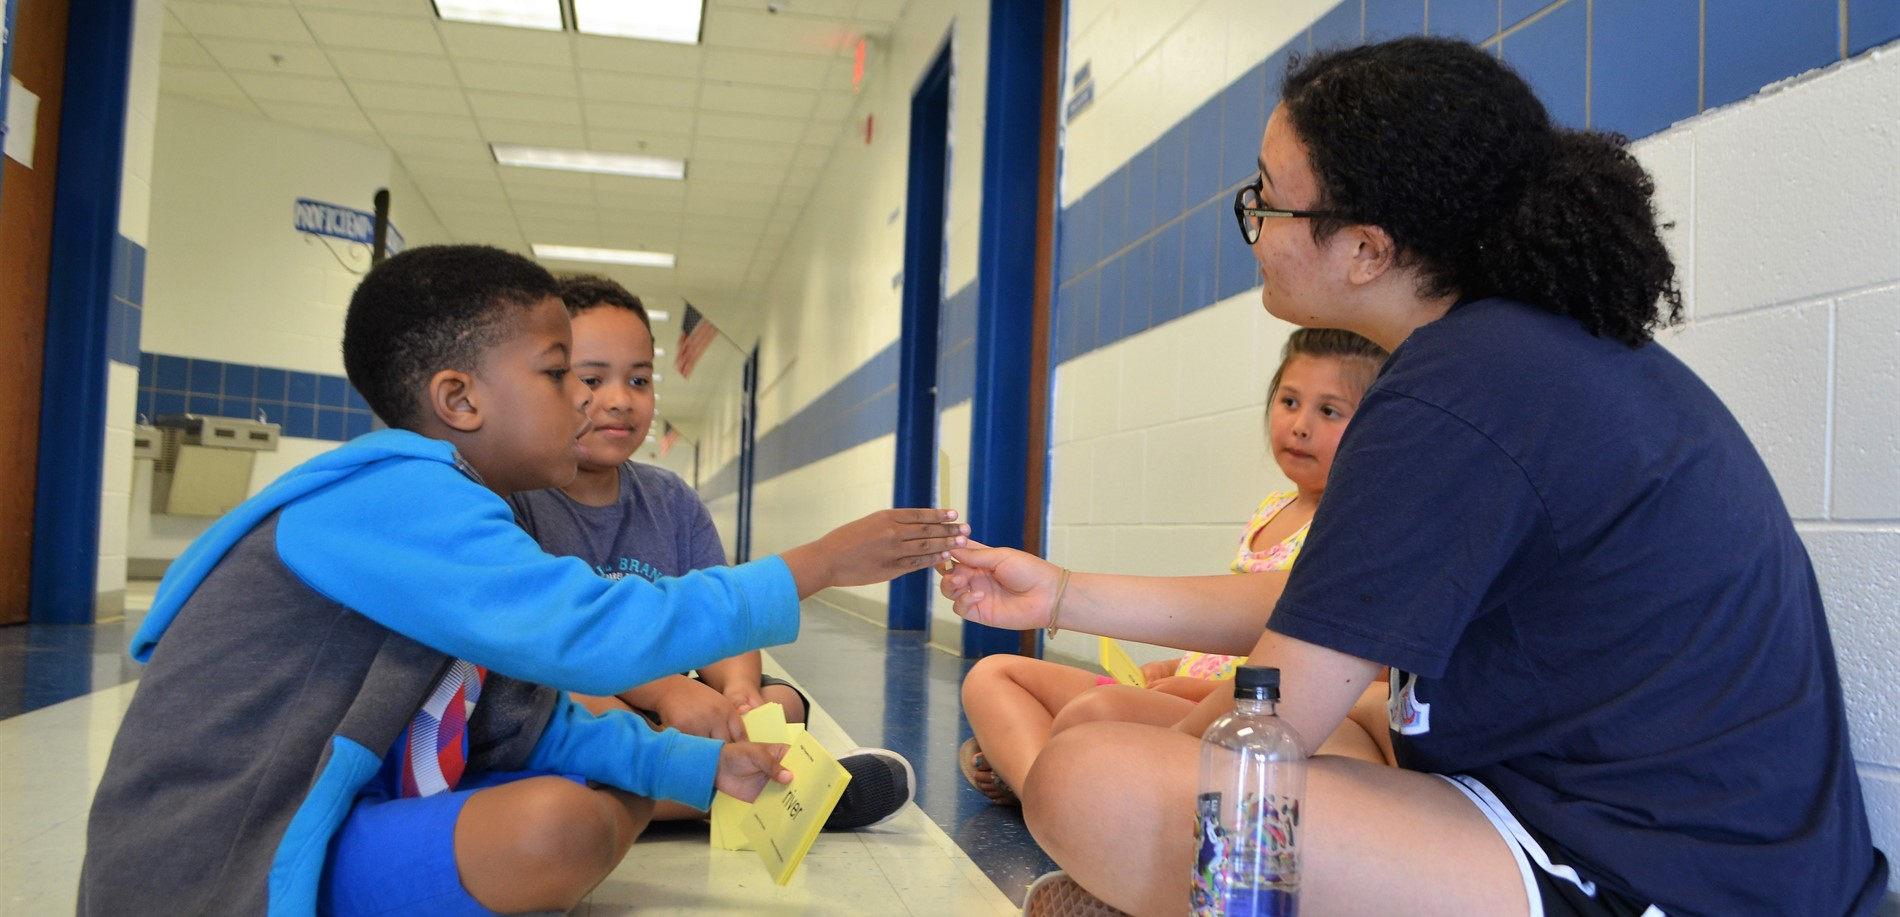 A North Hardin High School student works with elementary students during summer reading camp at Woodland Elementary.